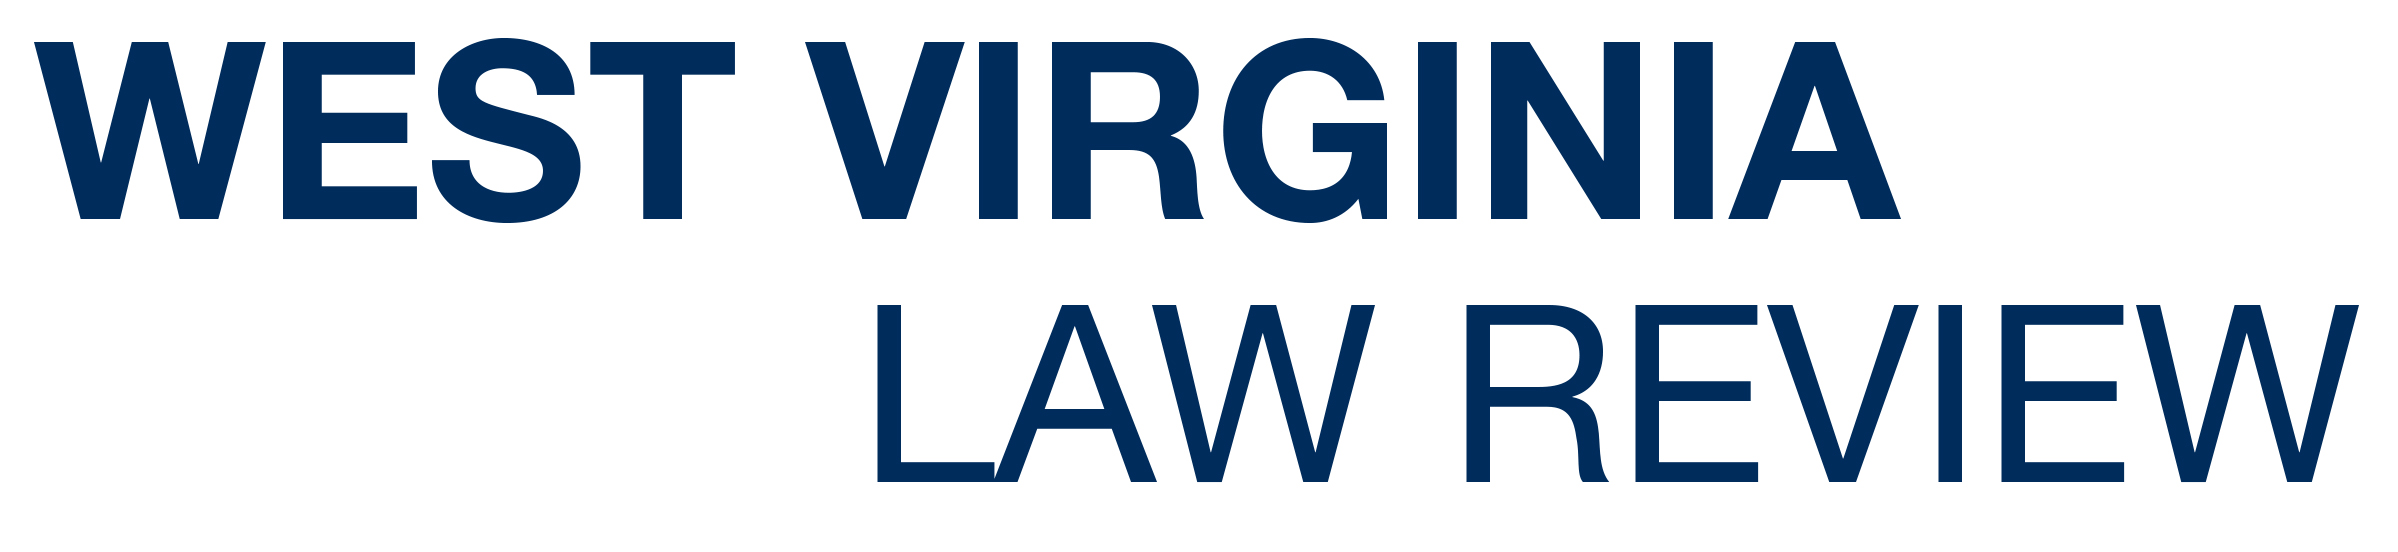 West Virginia Law Review Events